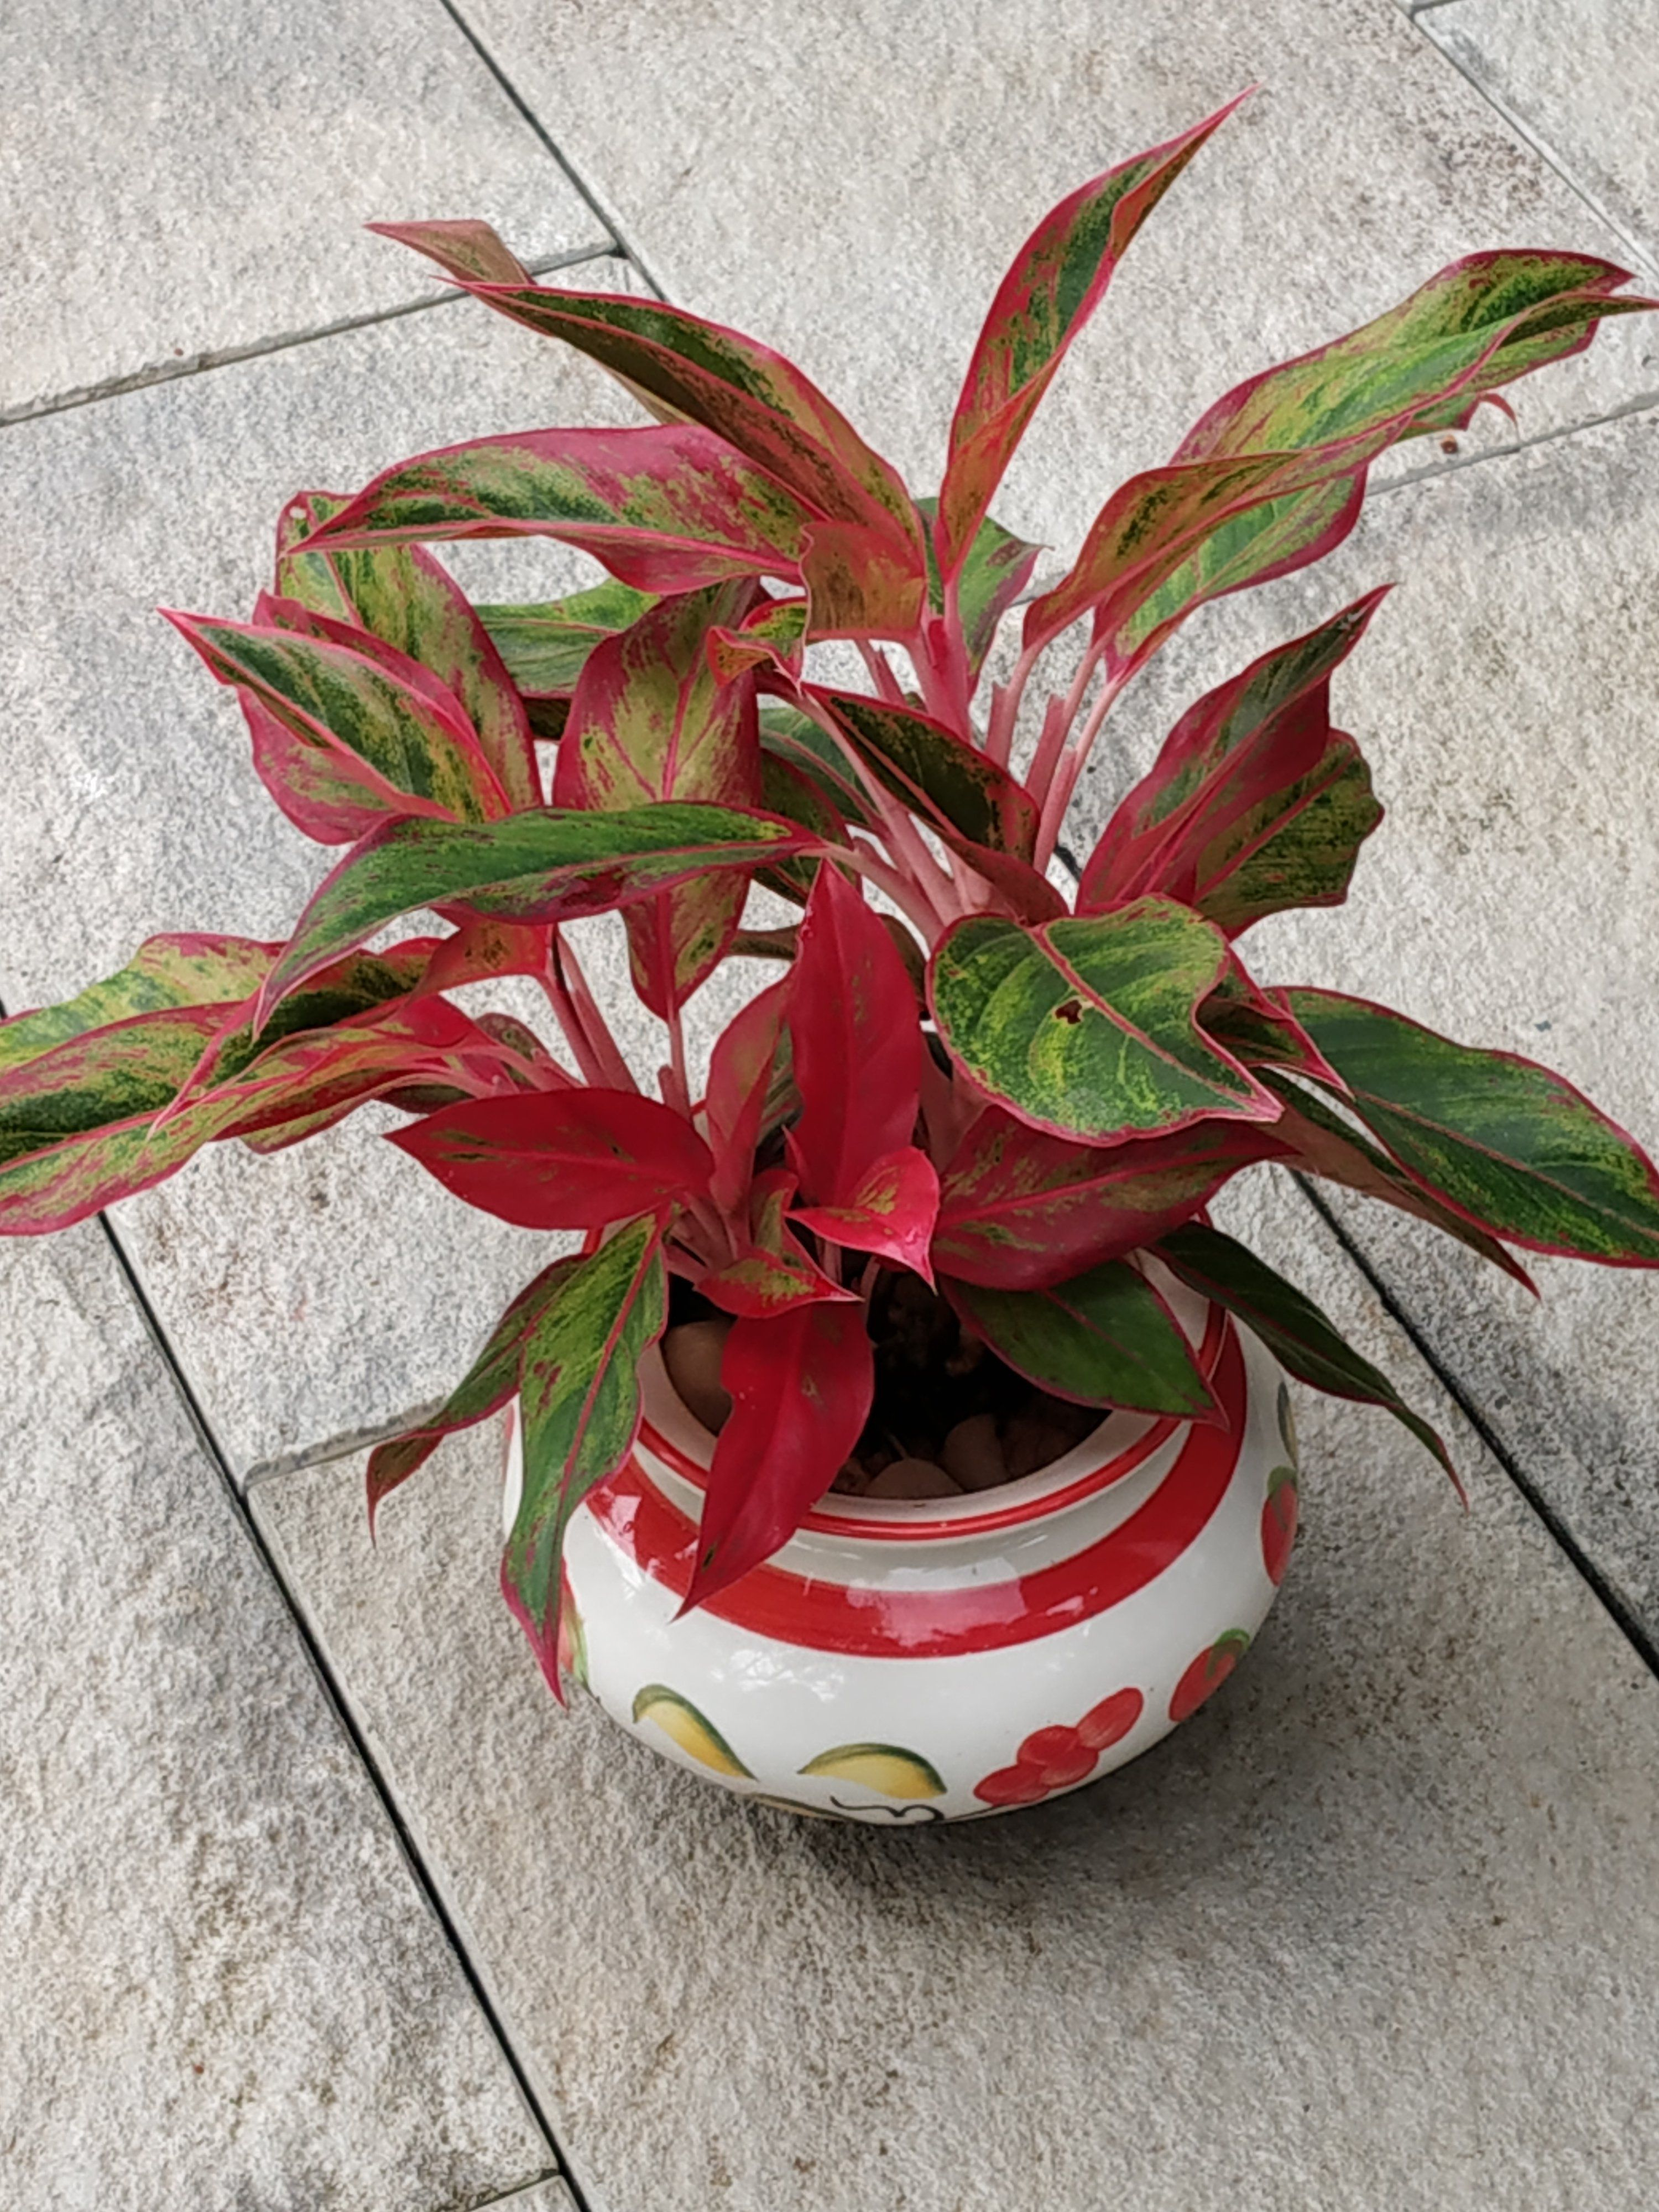 Most beautiful indoor plants, you can grow easily